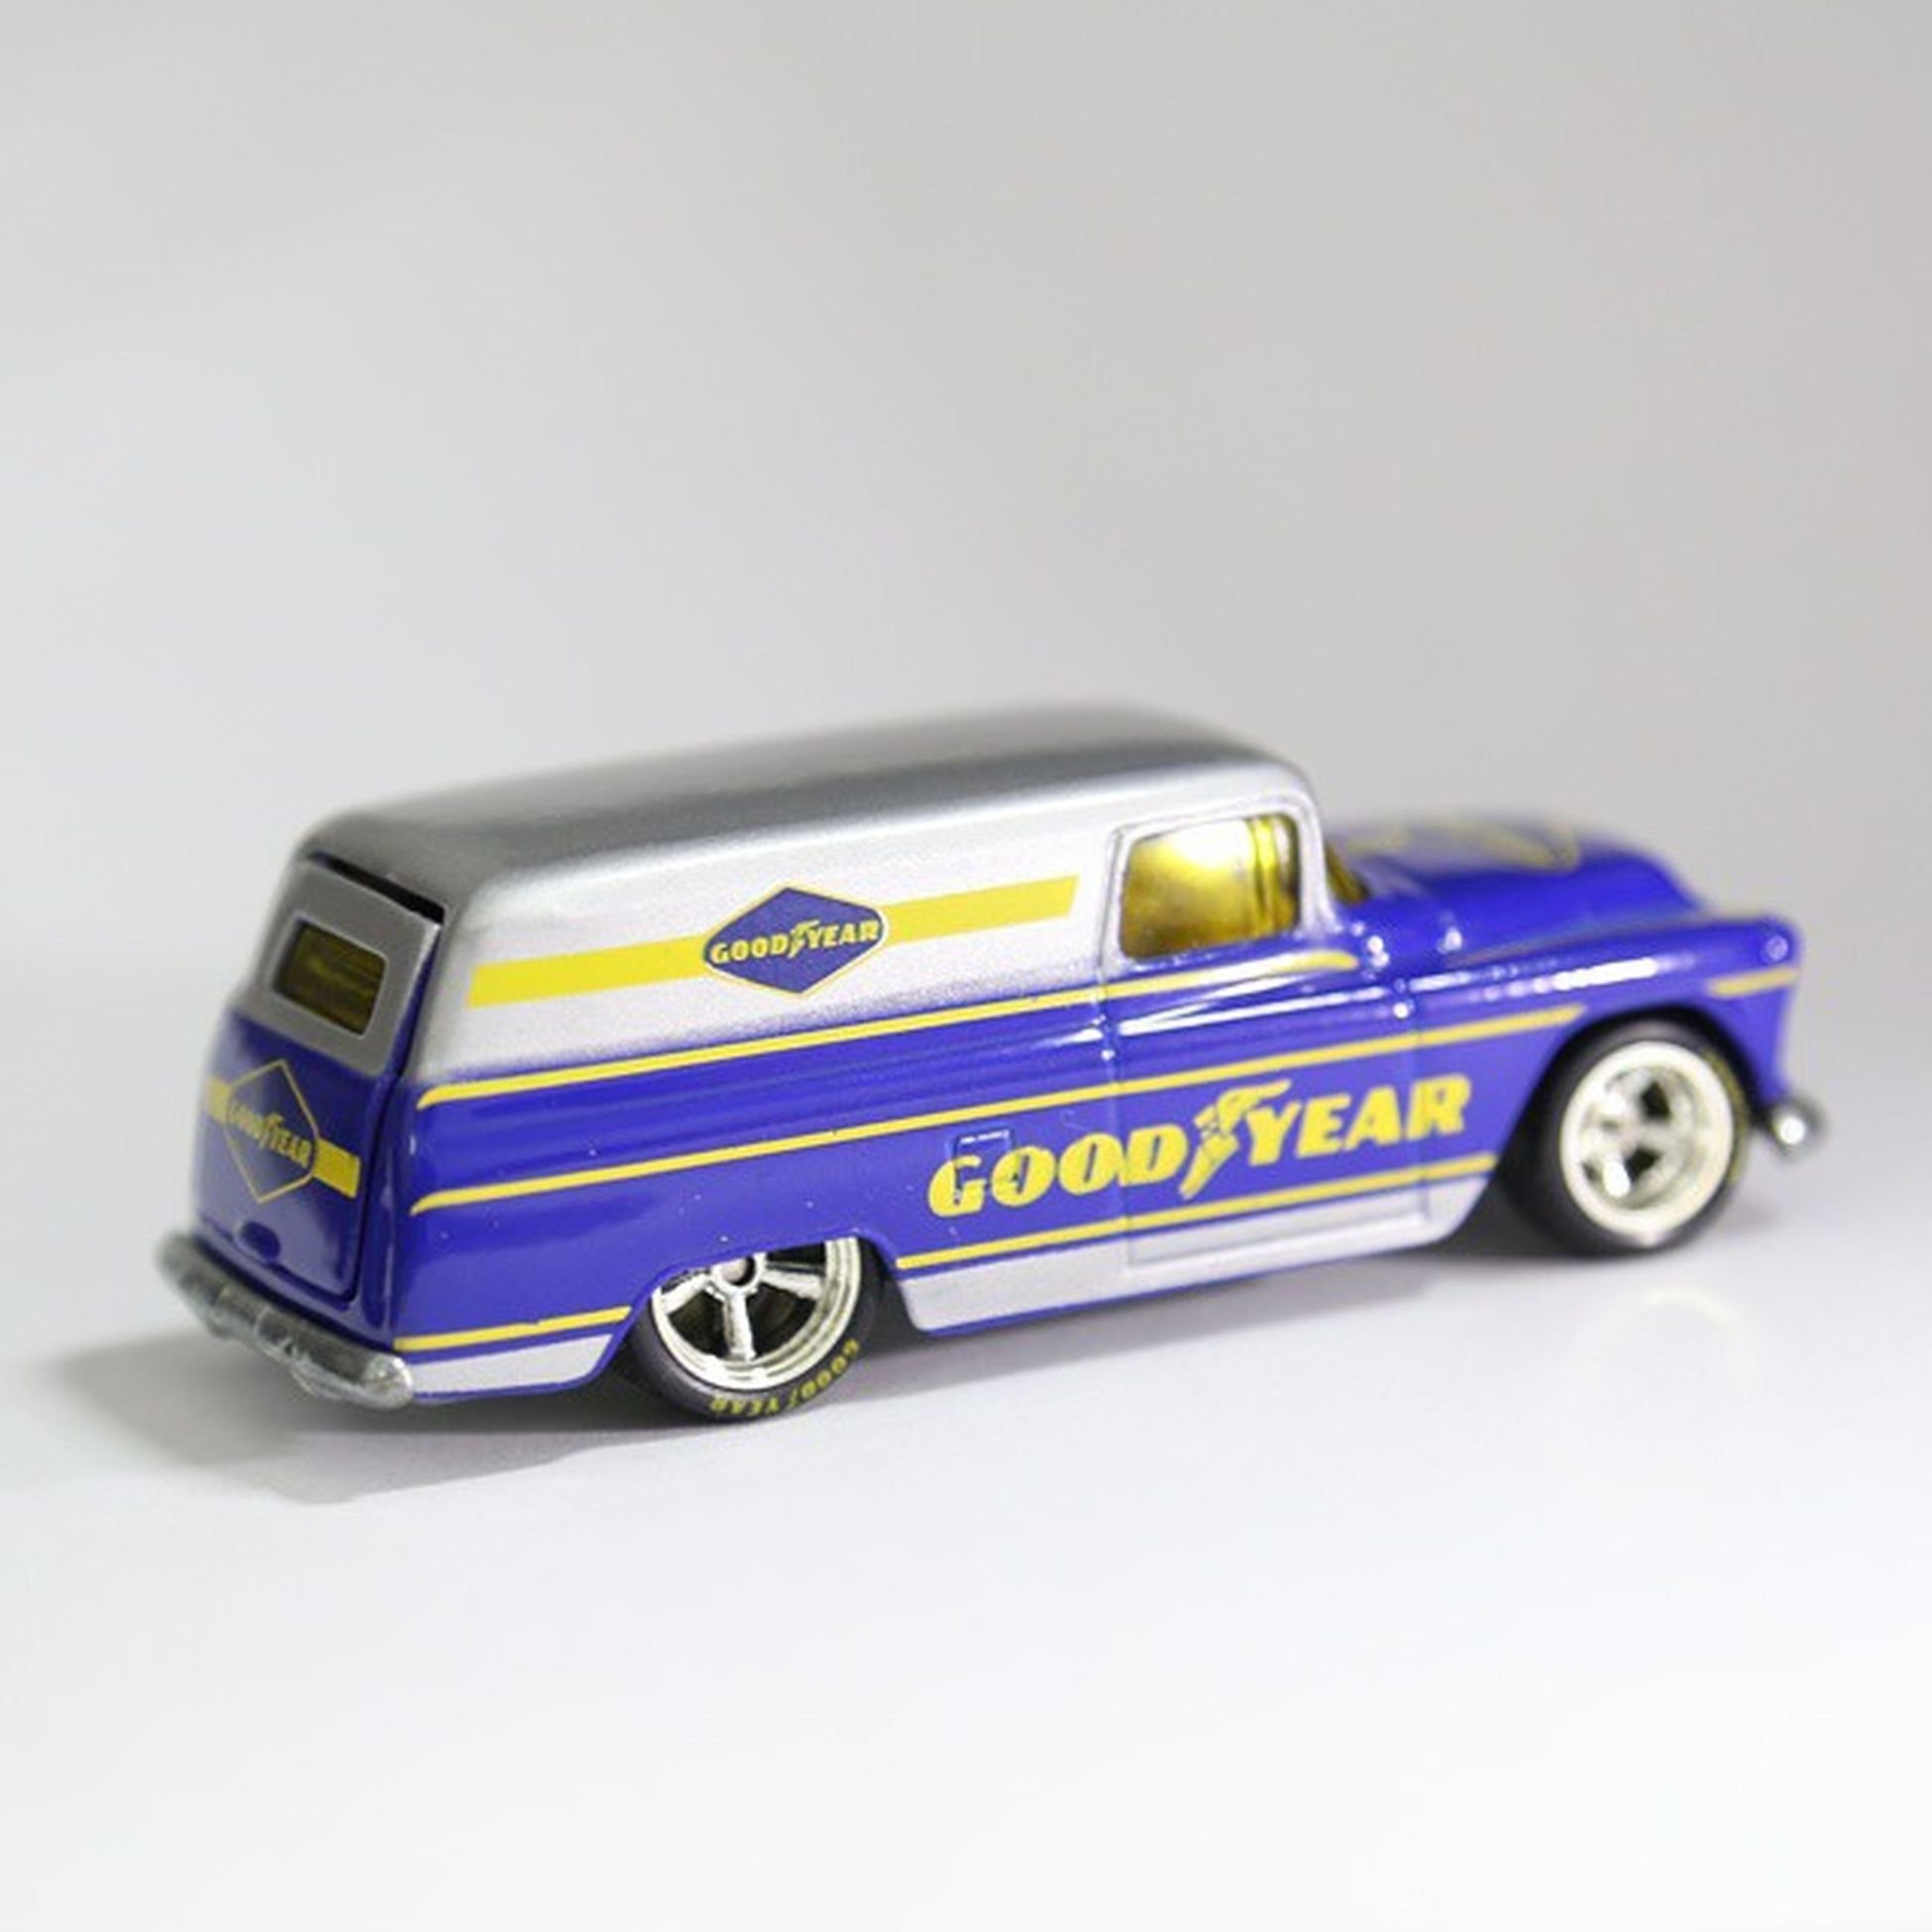 goodafternoon | chevy panel goodyear | no filter HotWheels Hotwheelscollector Hotwheelsbandung Hotwheelsindonesia Hotwheelscommunity Collector Blue Goodyear EOS1 Chevypanel Panel